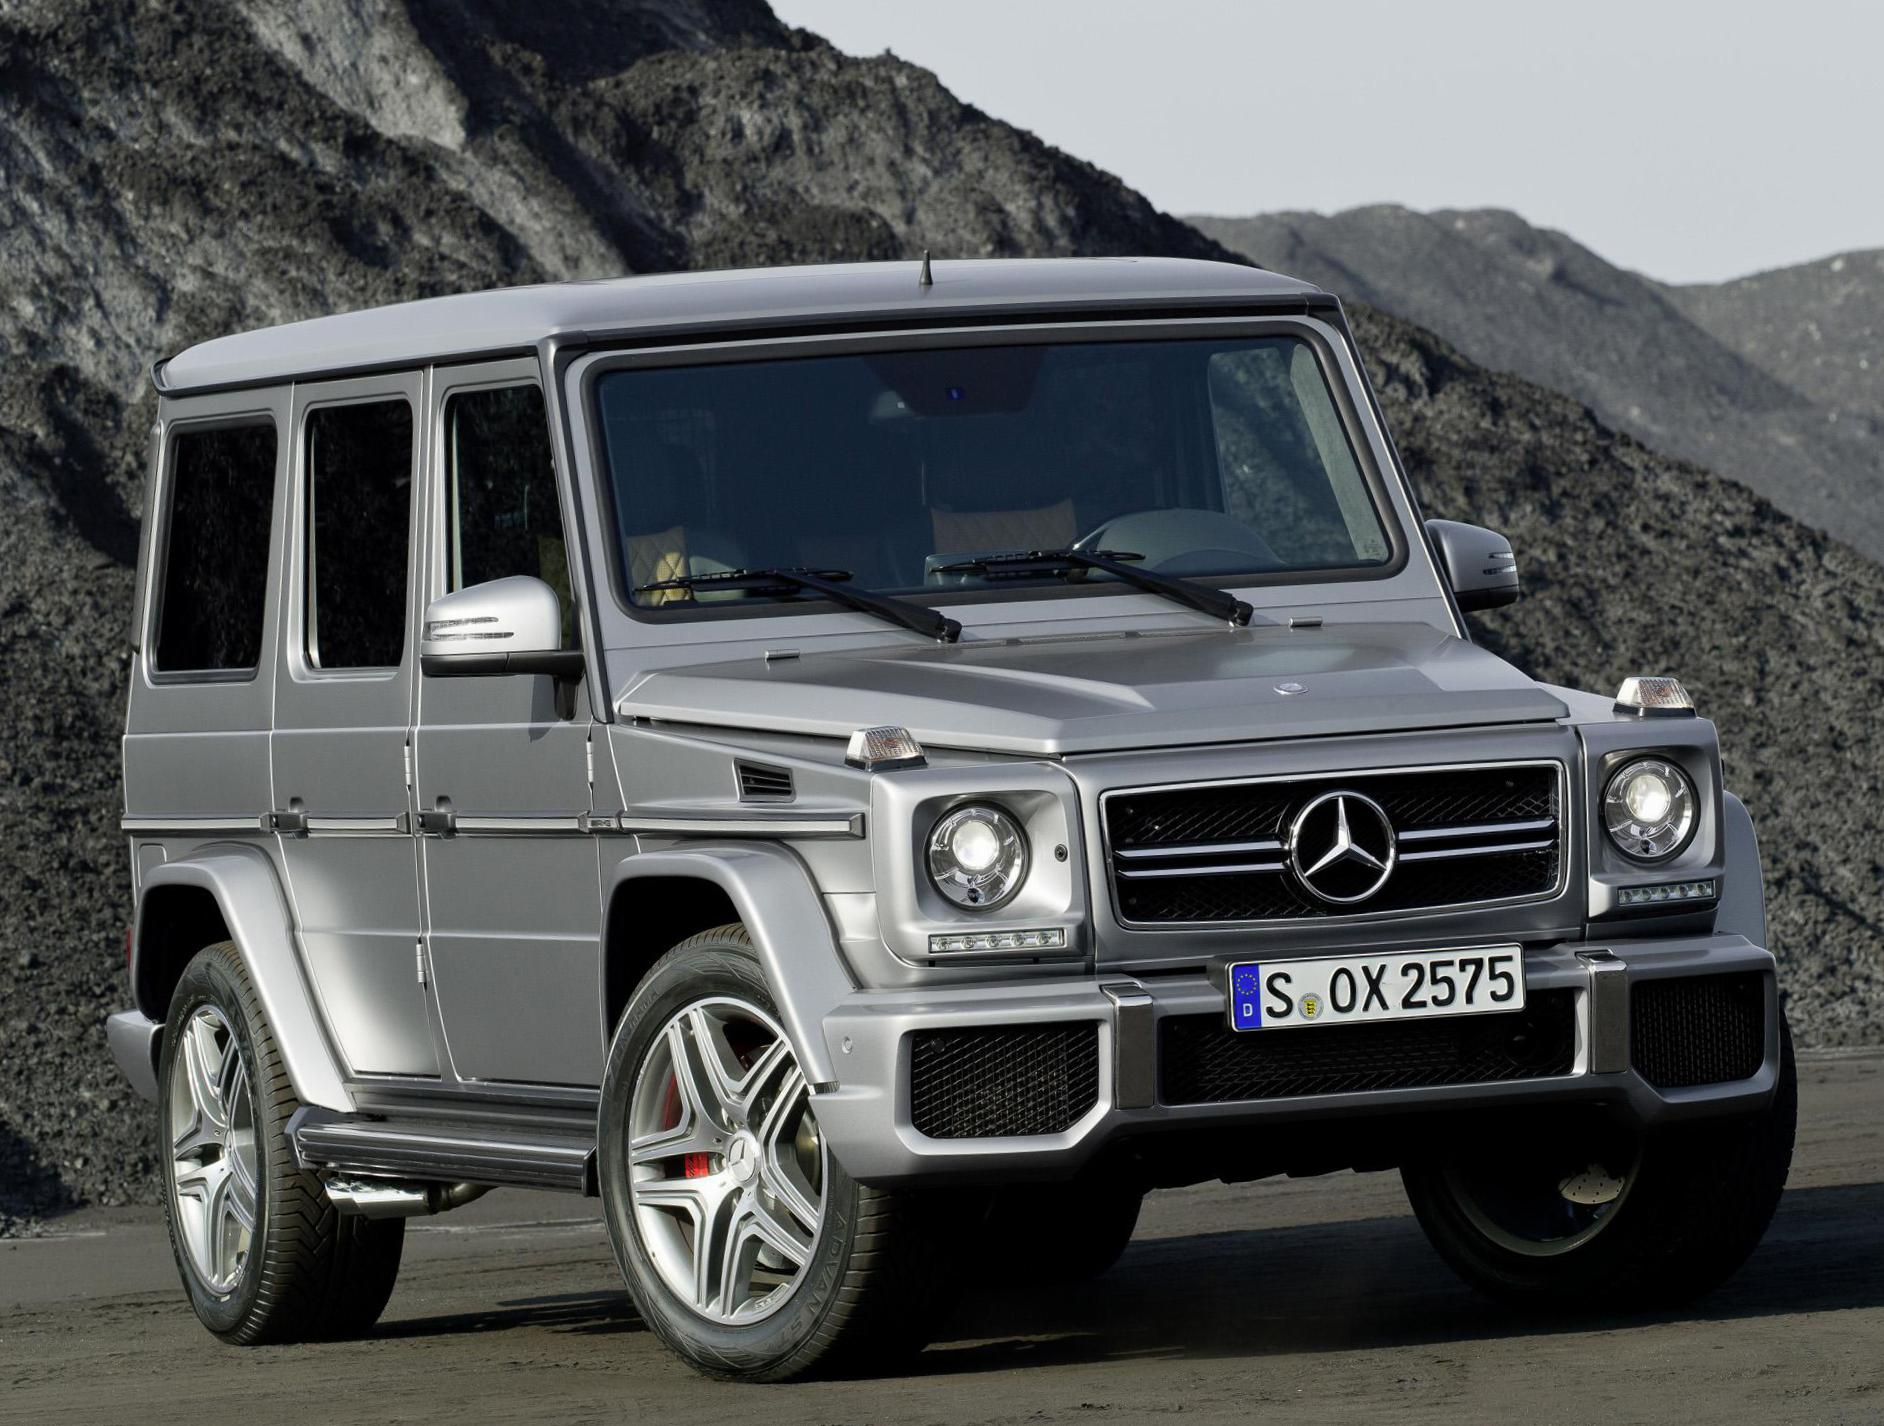 Mercedes G-Class AMG (W463) for sale 2007